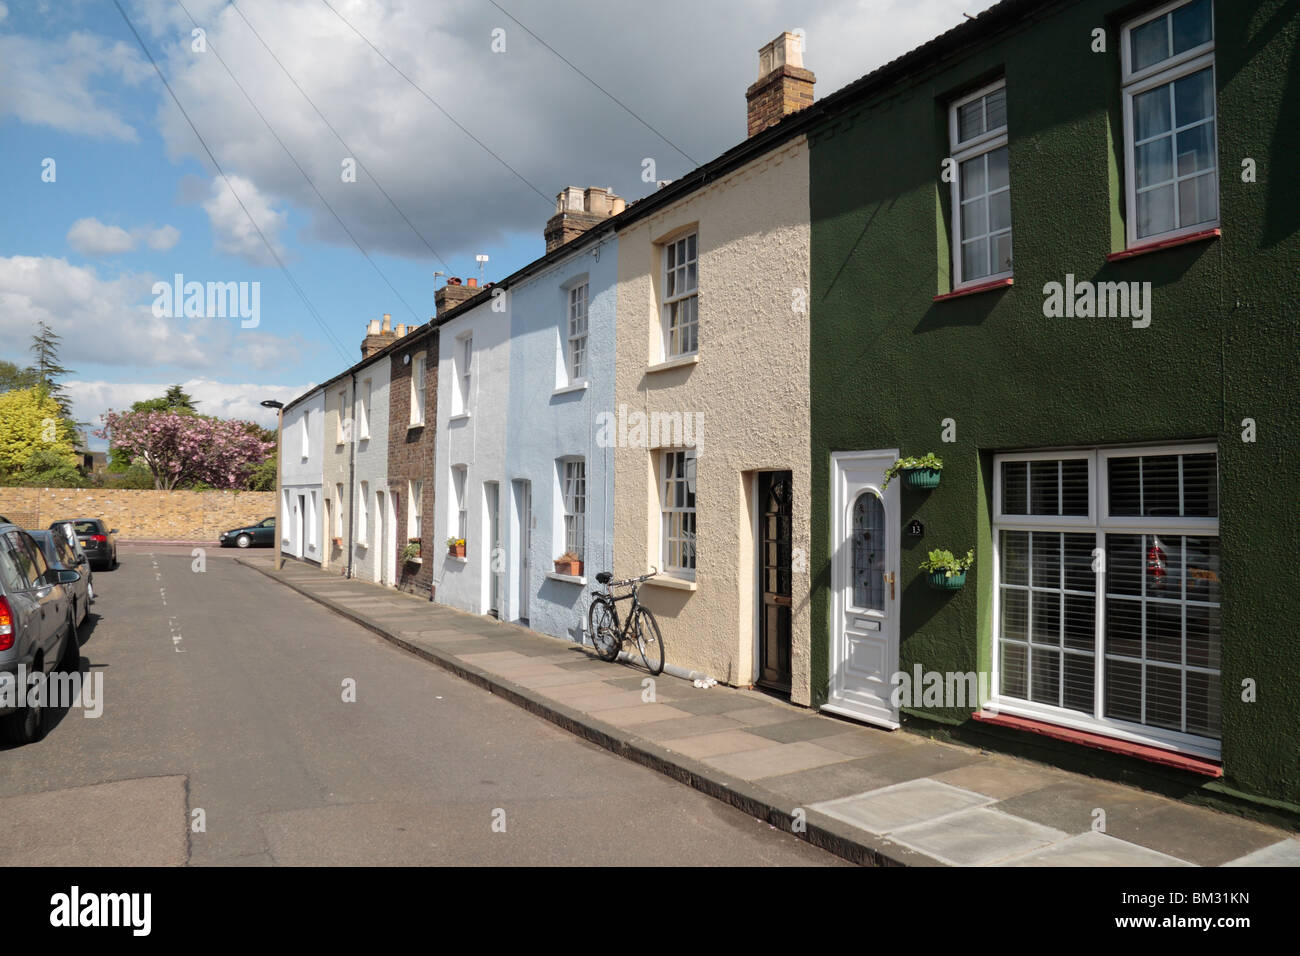 A row of traditional 19th century terraced properties on Denmark Road, Twickenham, Middx, UK. May 2010 - Stock Image